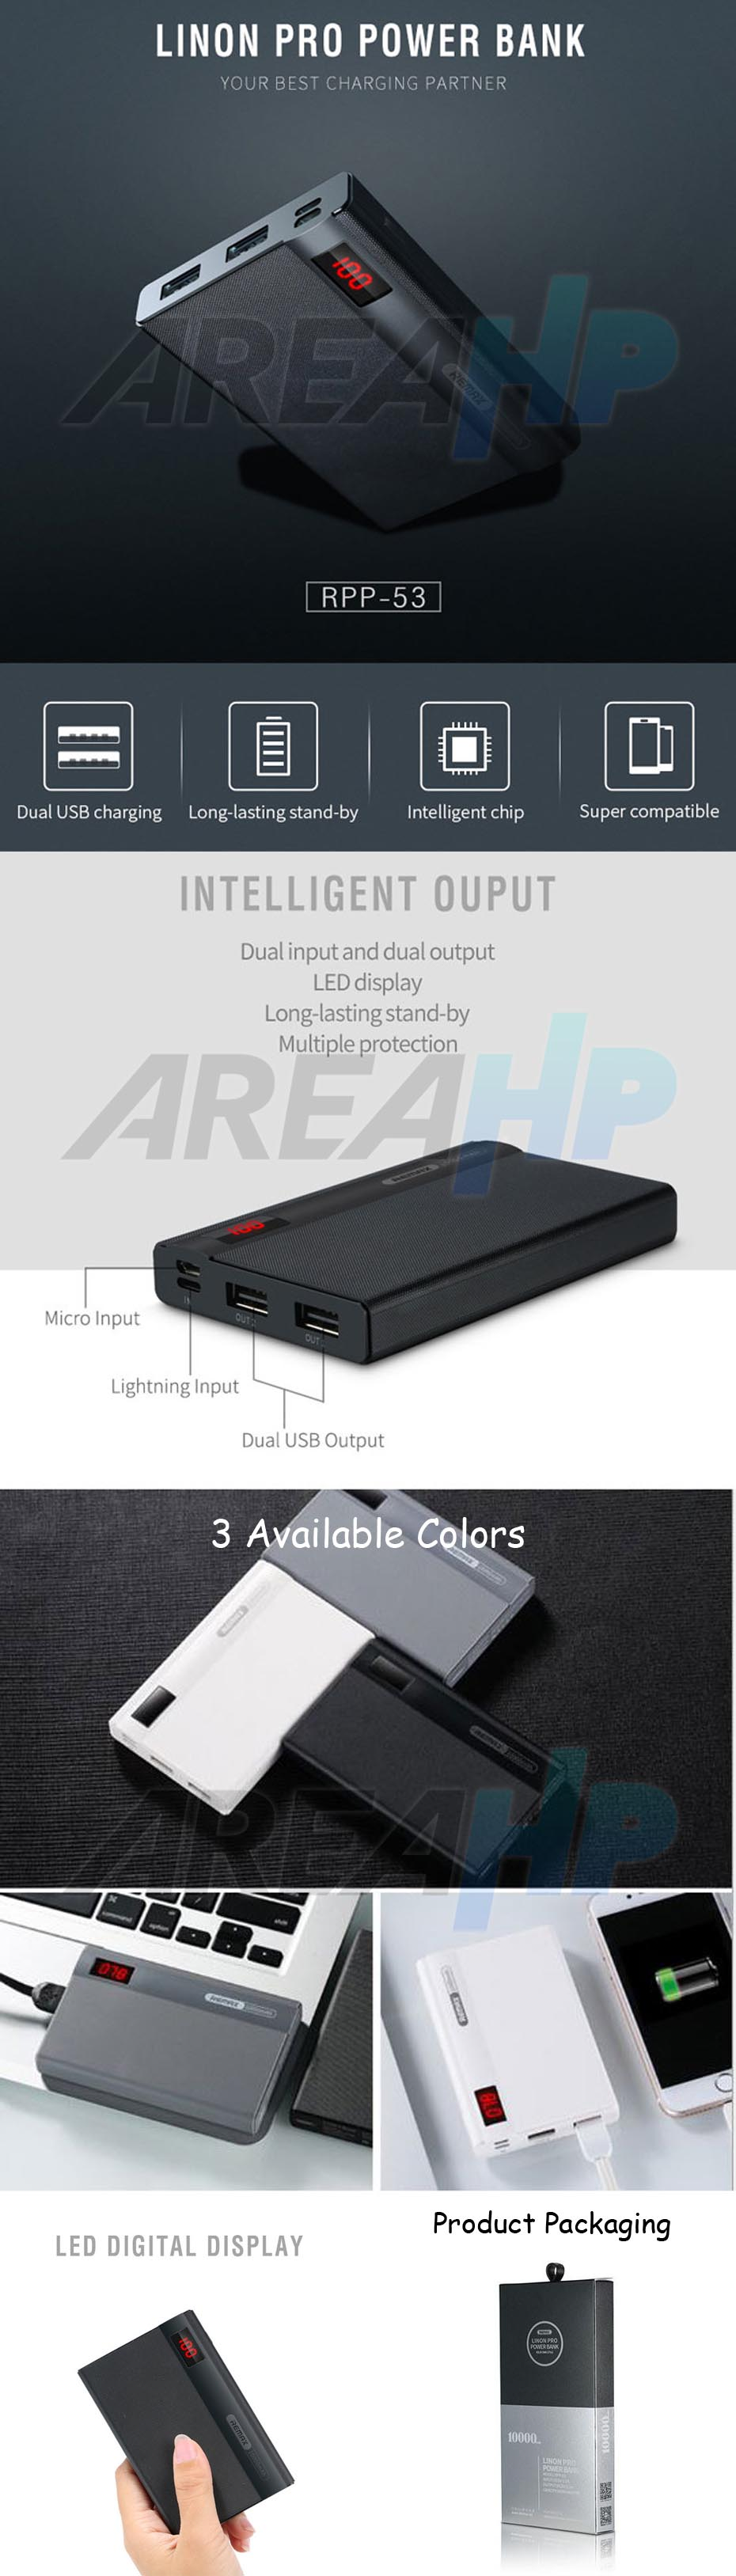 Remax Power Bank 10000 mAh Linon Pro RPP-53 Overview